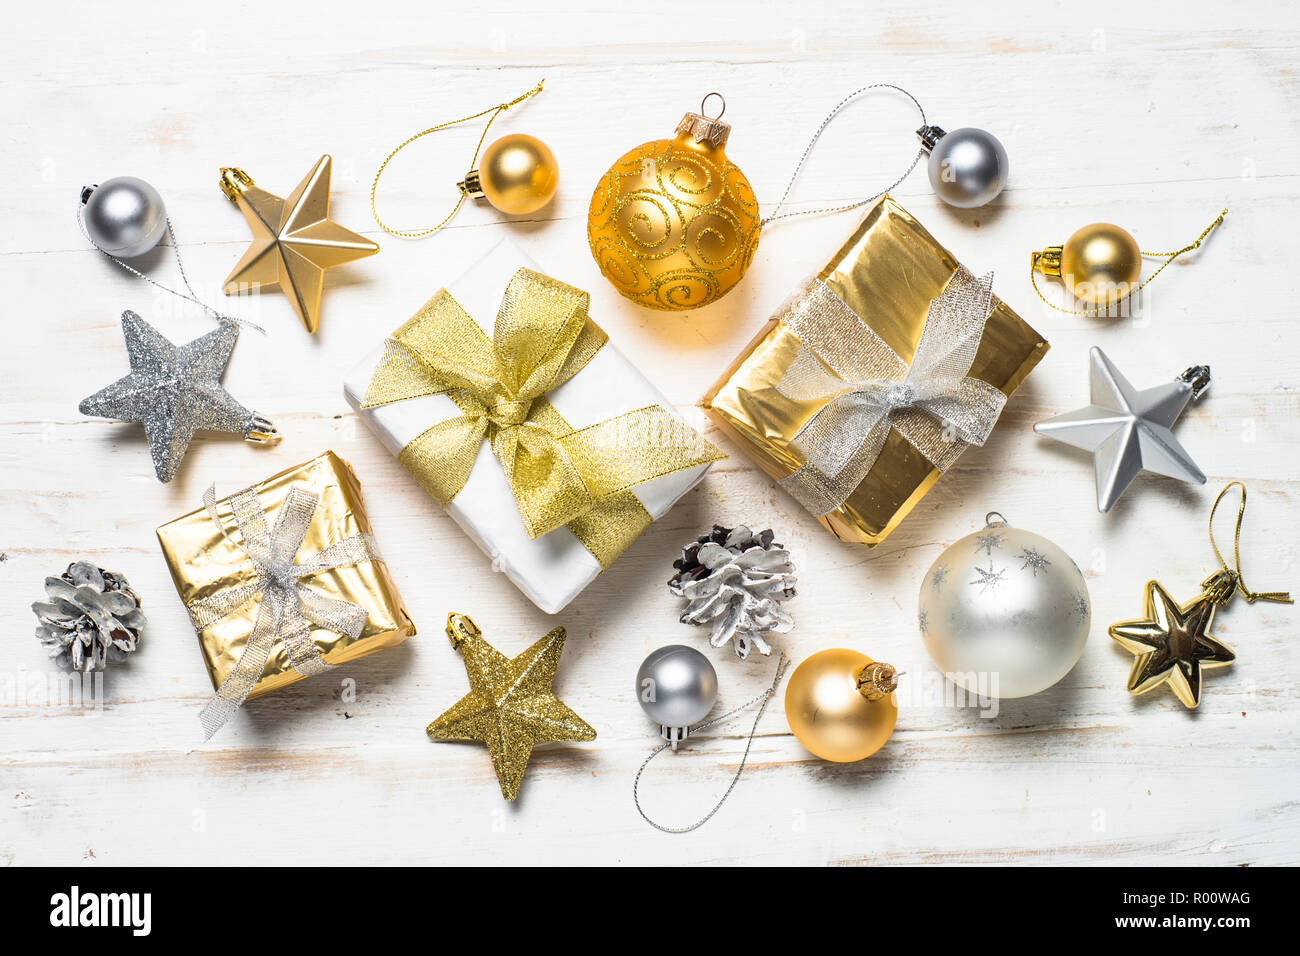 25374fb17c6b Gold and silver christmas present box and decorations on white wooden  background. Top view.